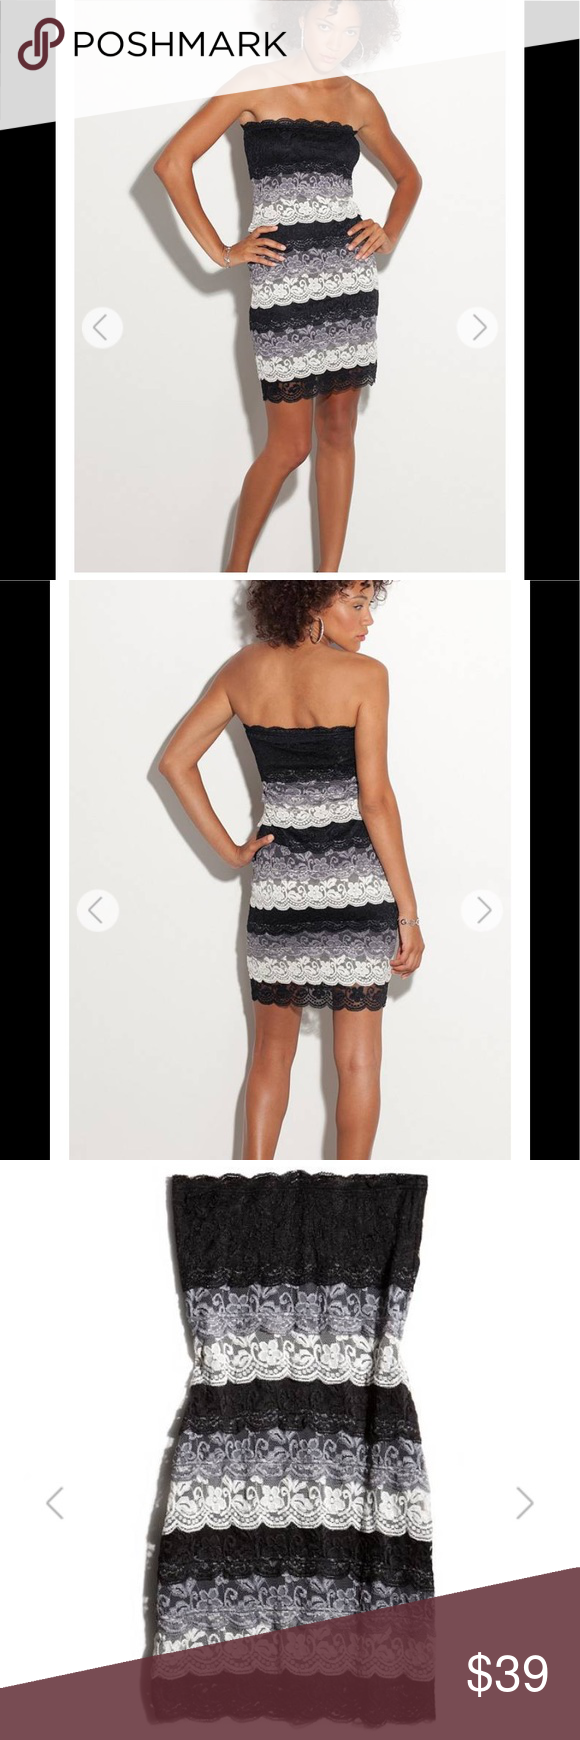 ea005adfc44 GUESS Tyra Tiered Lace Strapless Dress L G by GUESS A sexy tube dress made  up of sexy details. Strapless dress showcases ladylike lace from top to  bottom in ...